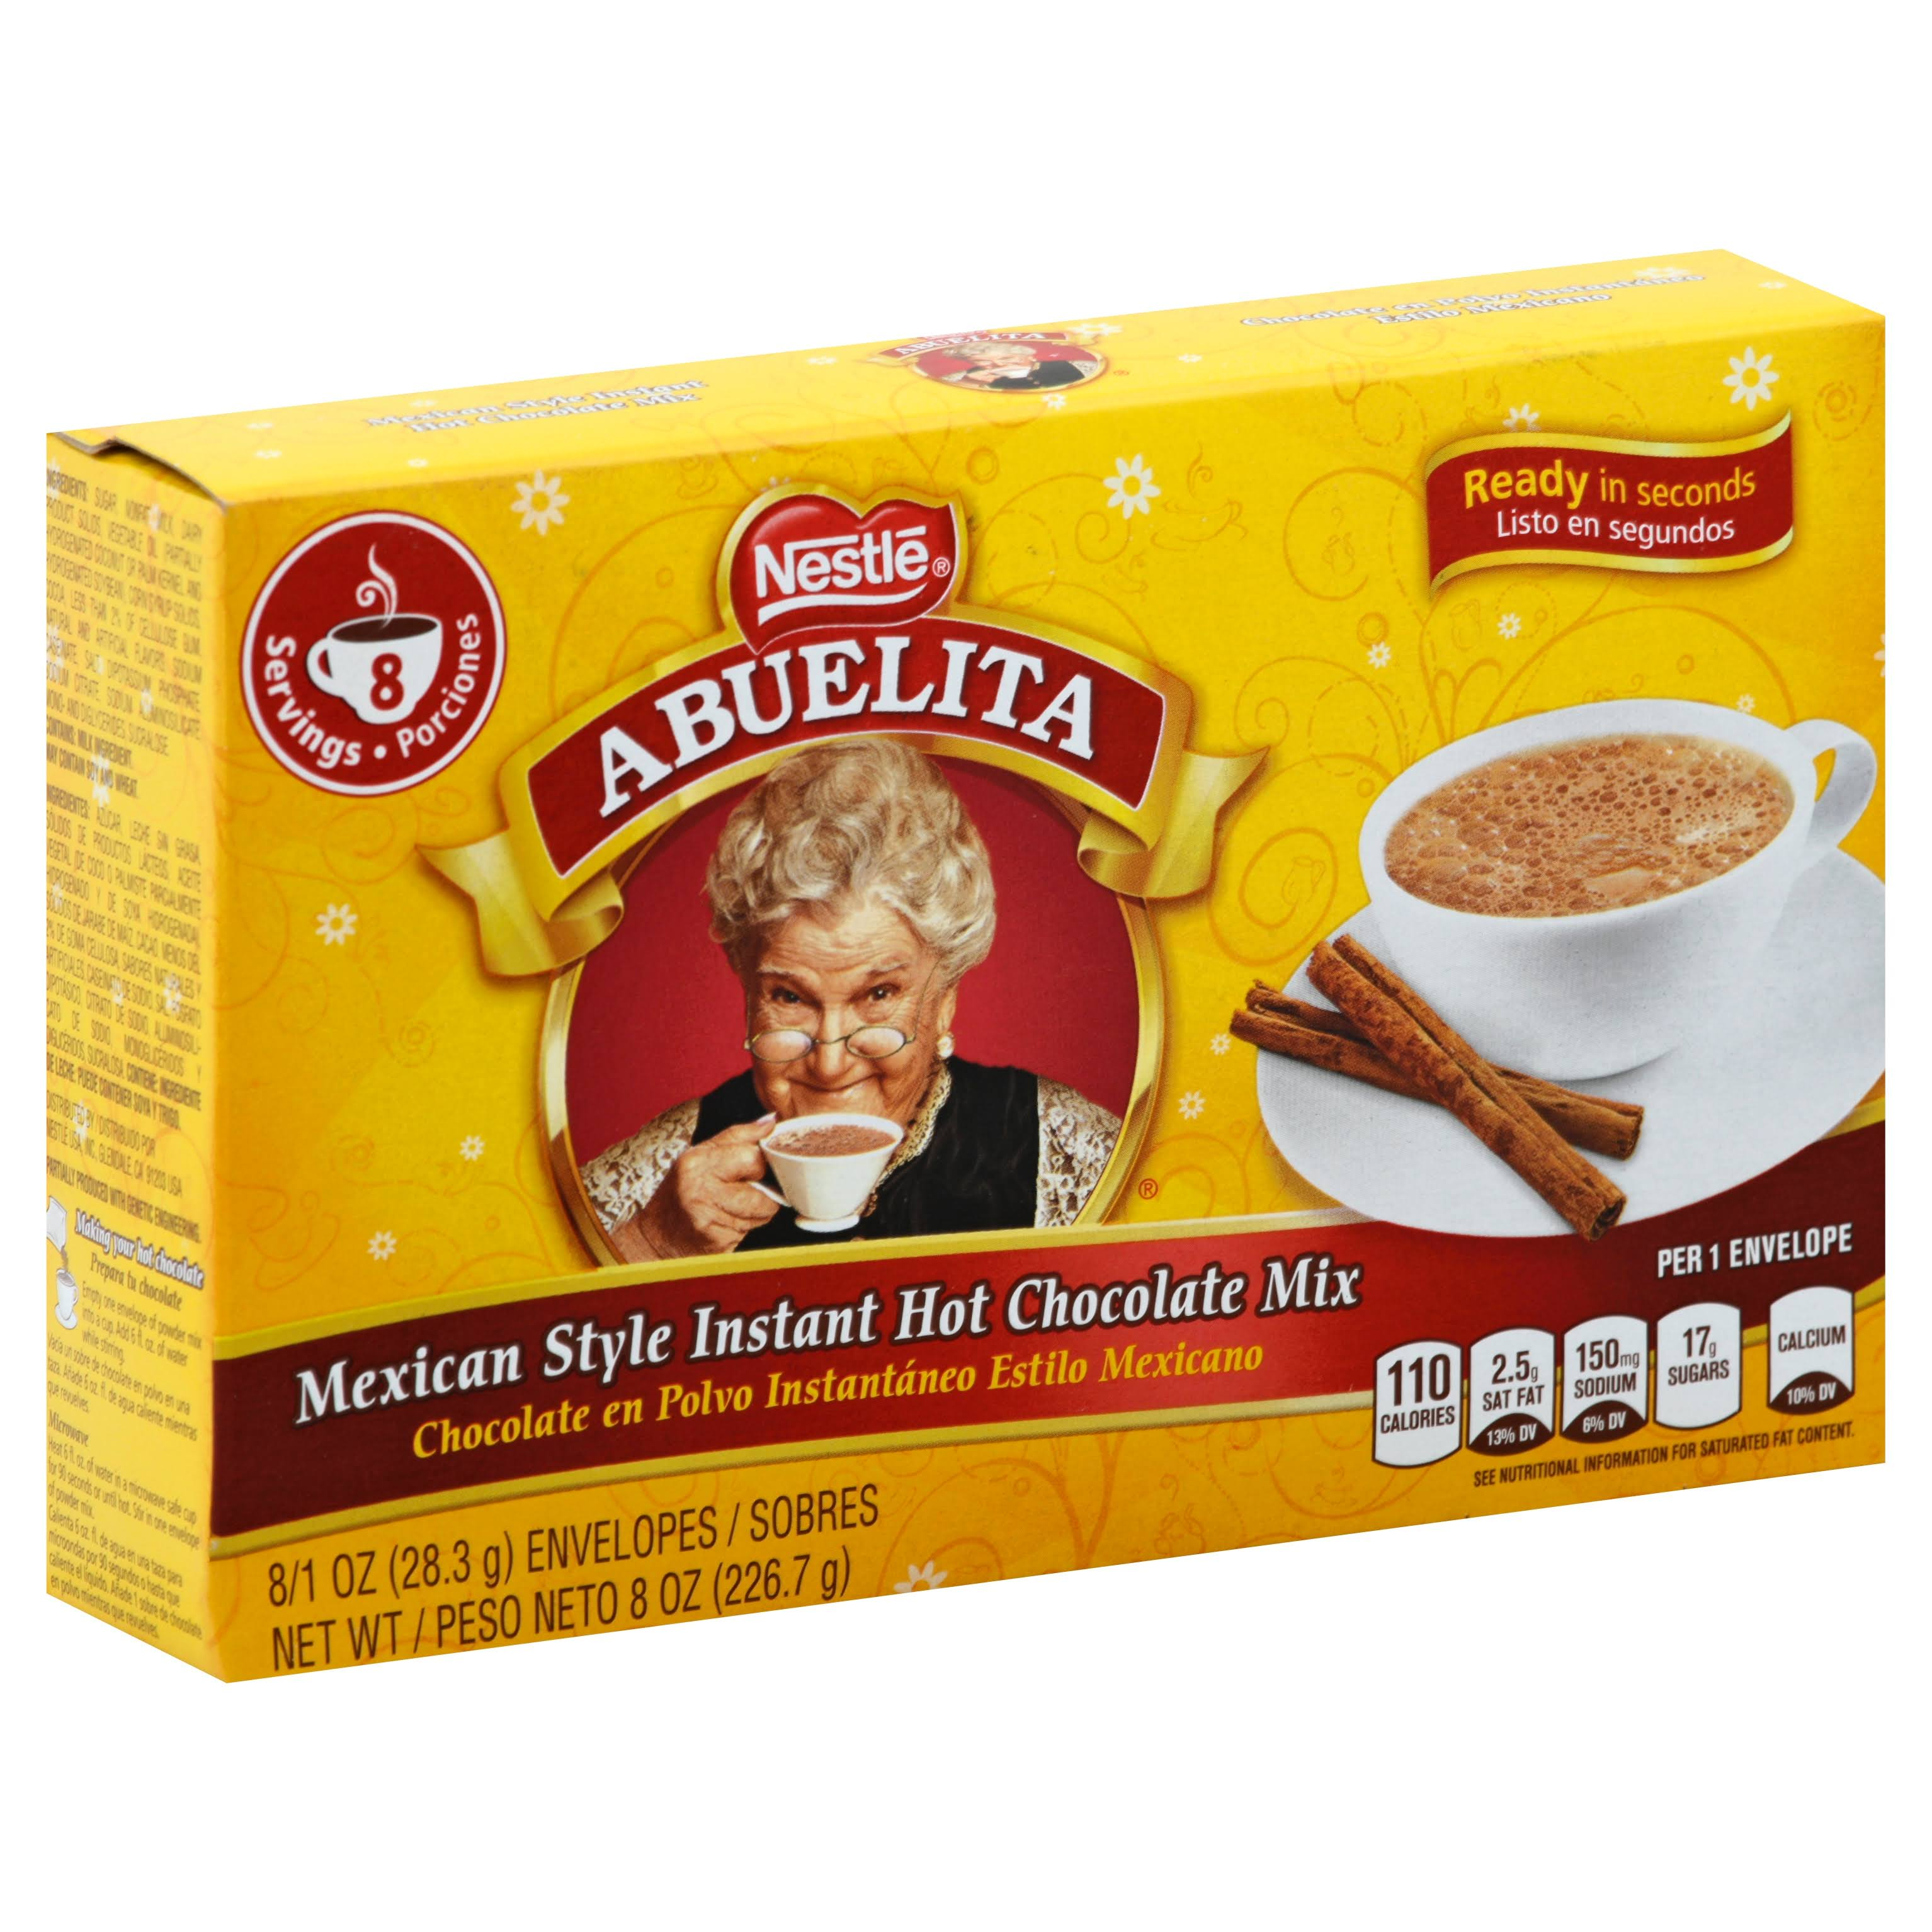 Nestlé Abuelita Mexican Style Instant Hot Chocolate Mix - 1oz, 8pk